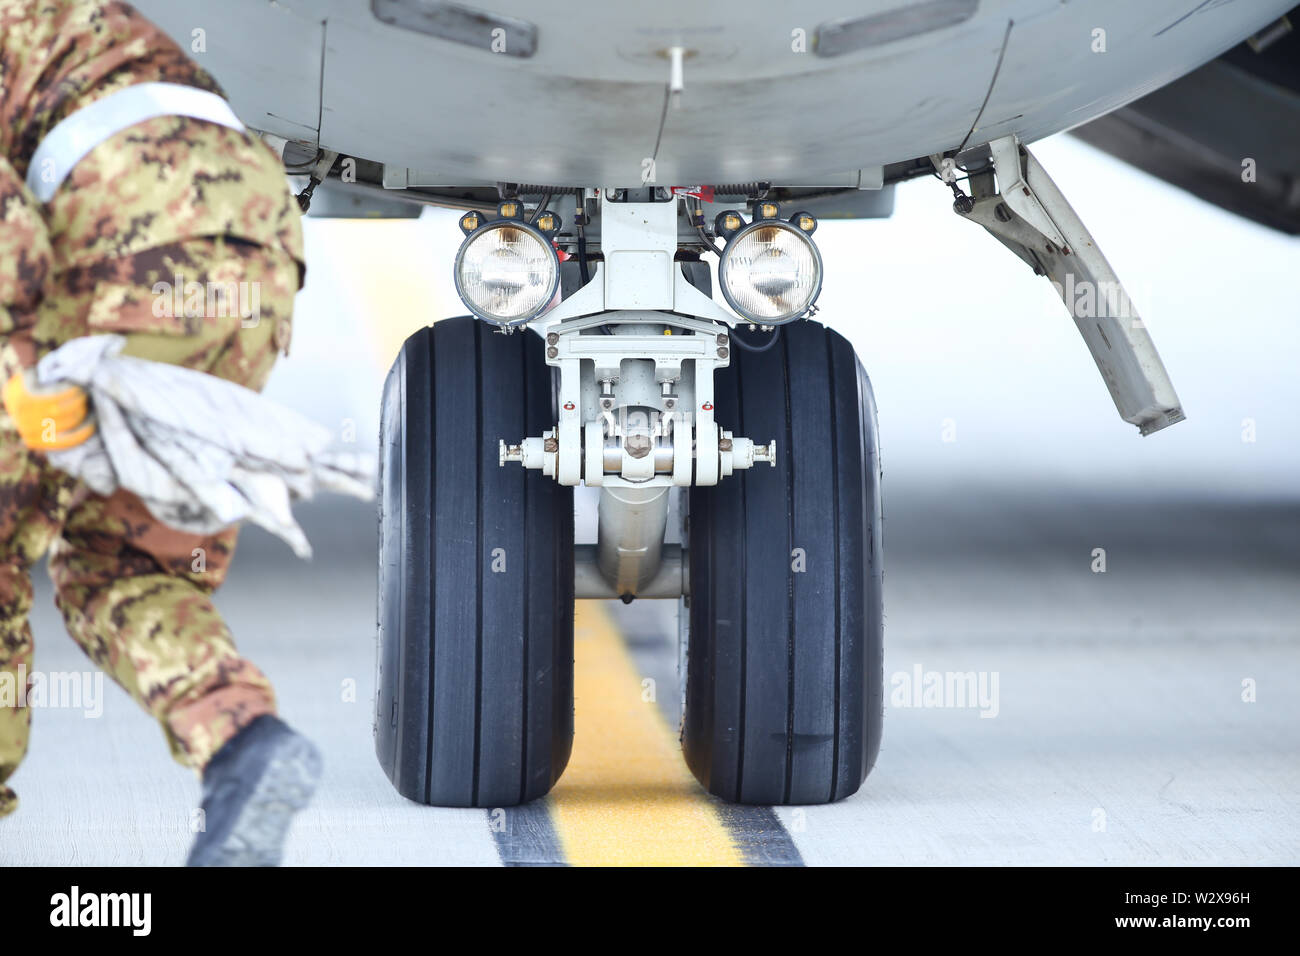 An army mechanic is inspecting the landing gear of a military cargo plane. - Stock Image